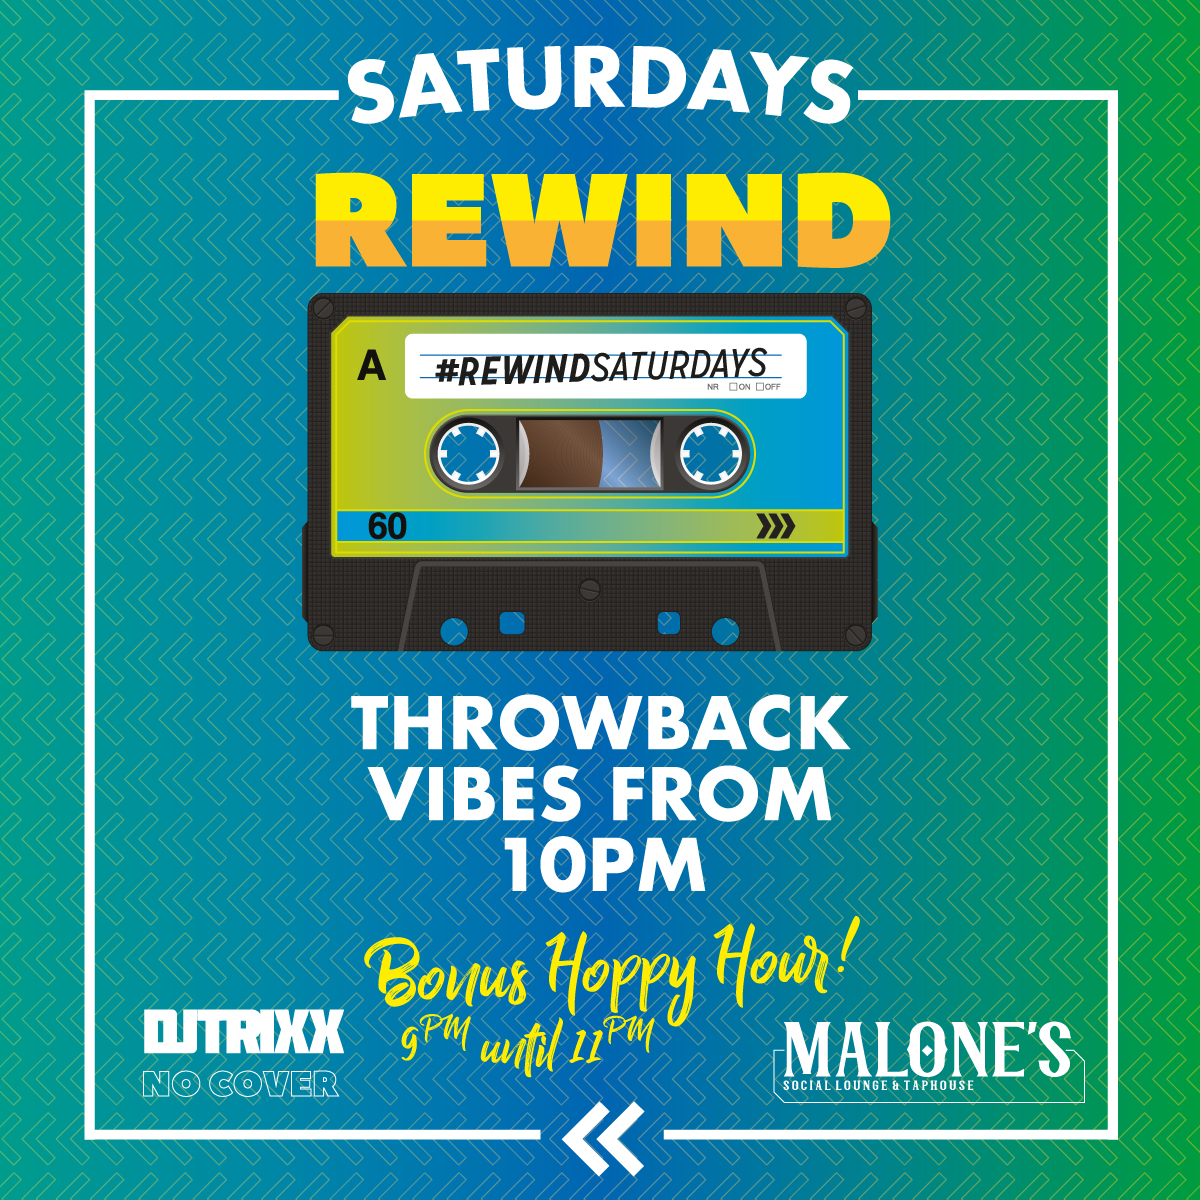 REWIND Saturdays